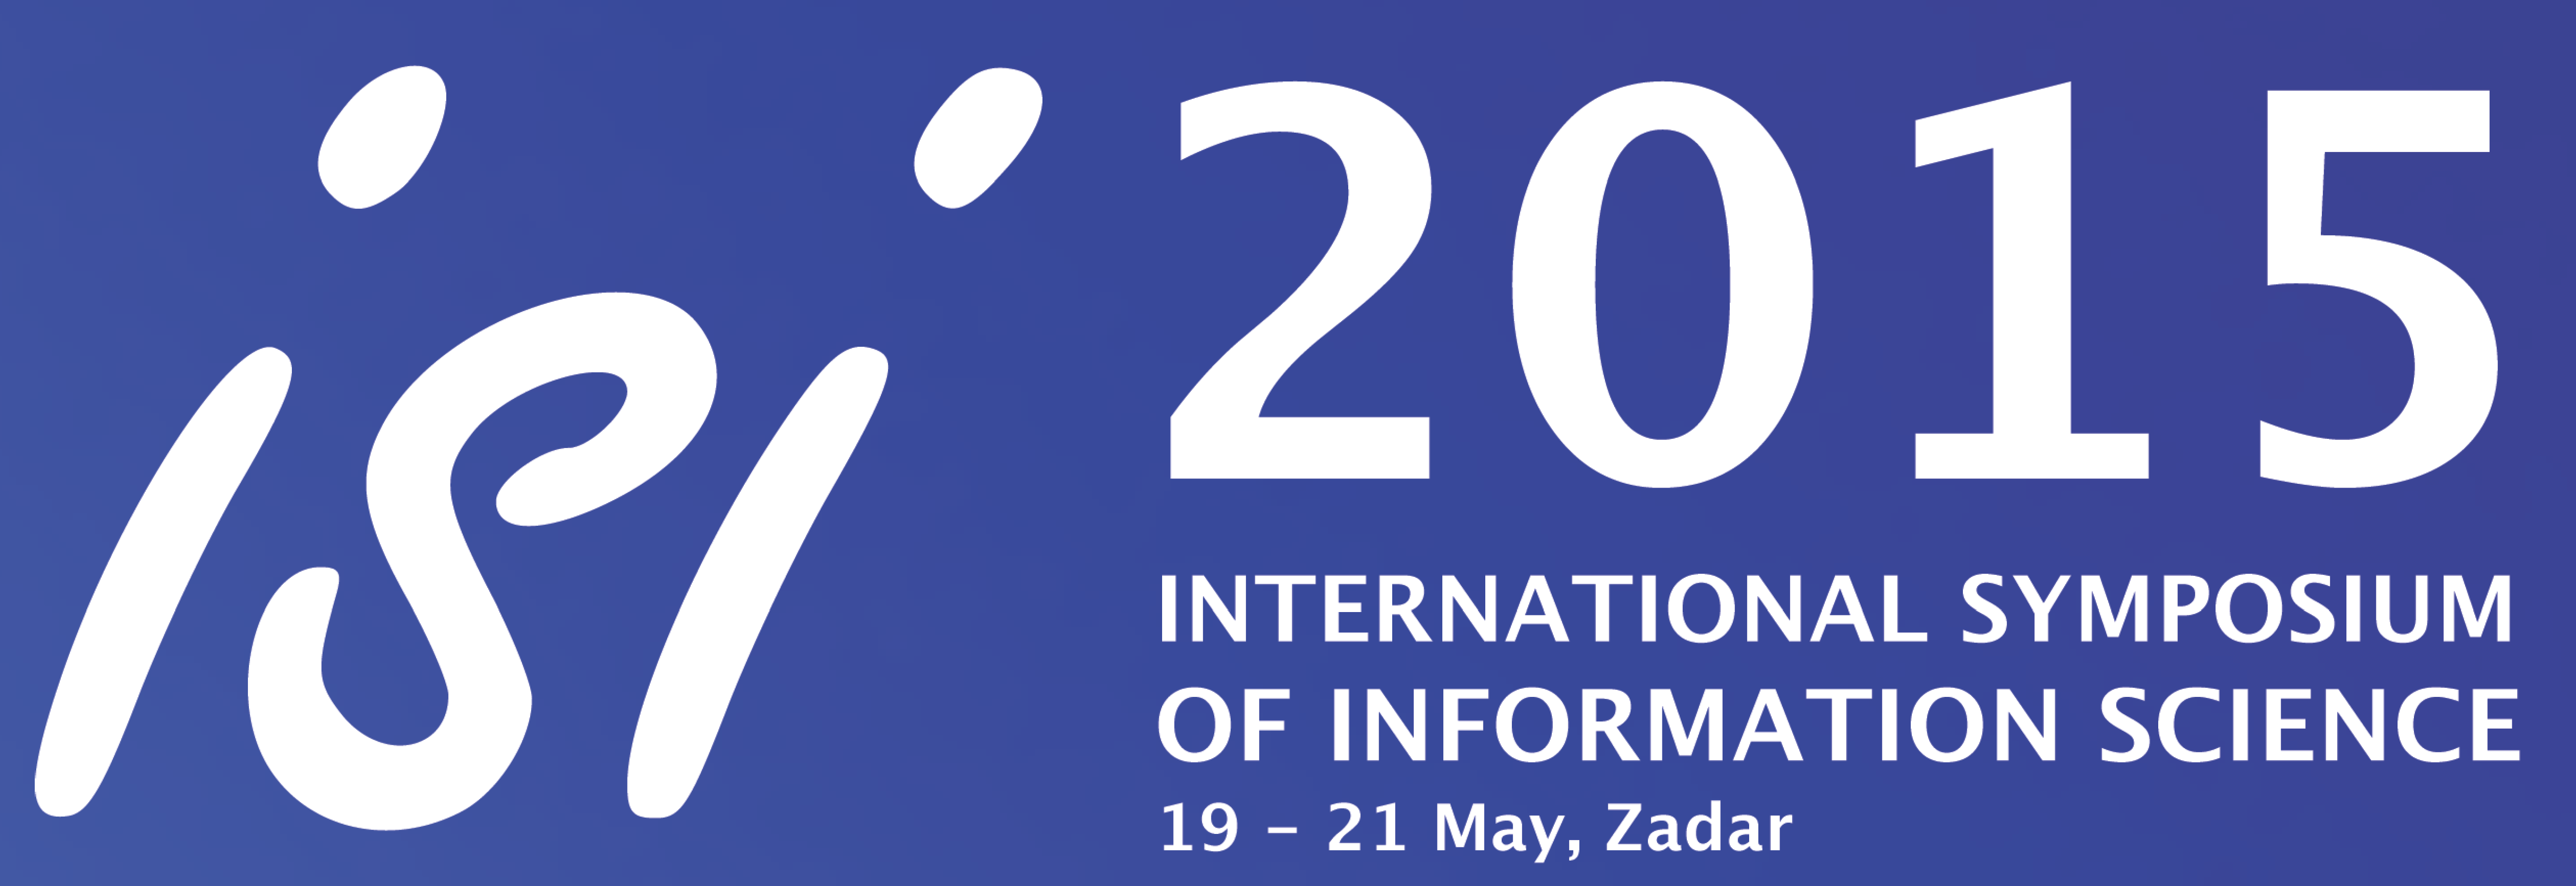 ISI 2015 banner